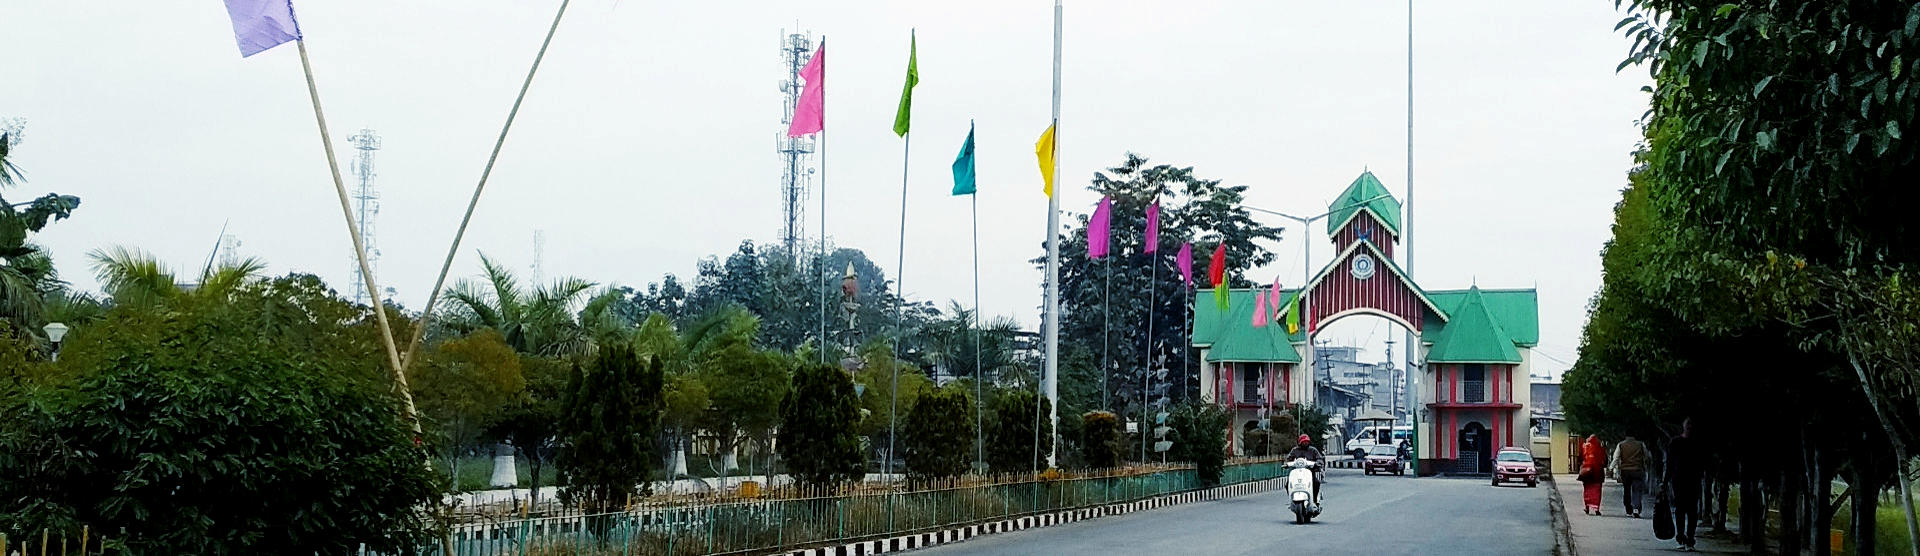 Manipur University Main Gate